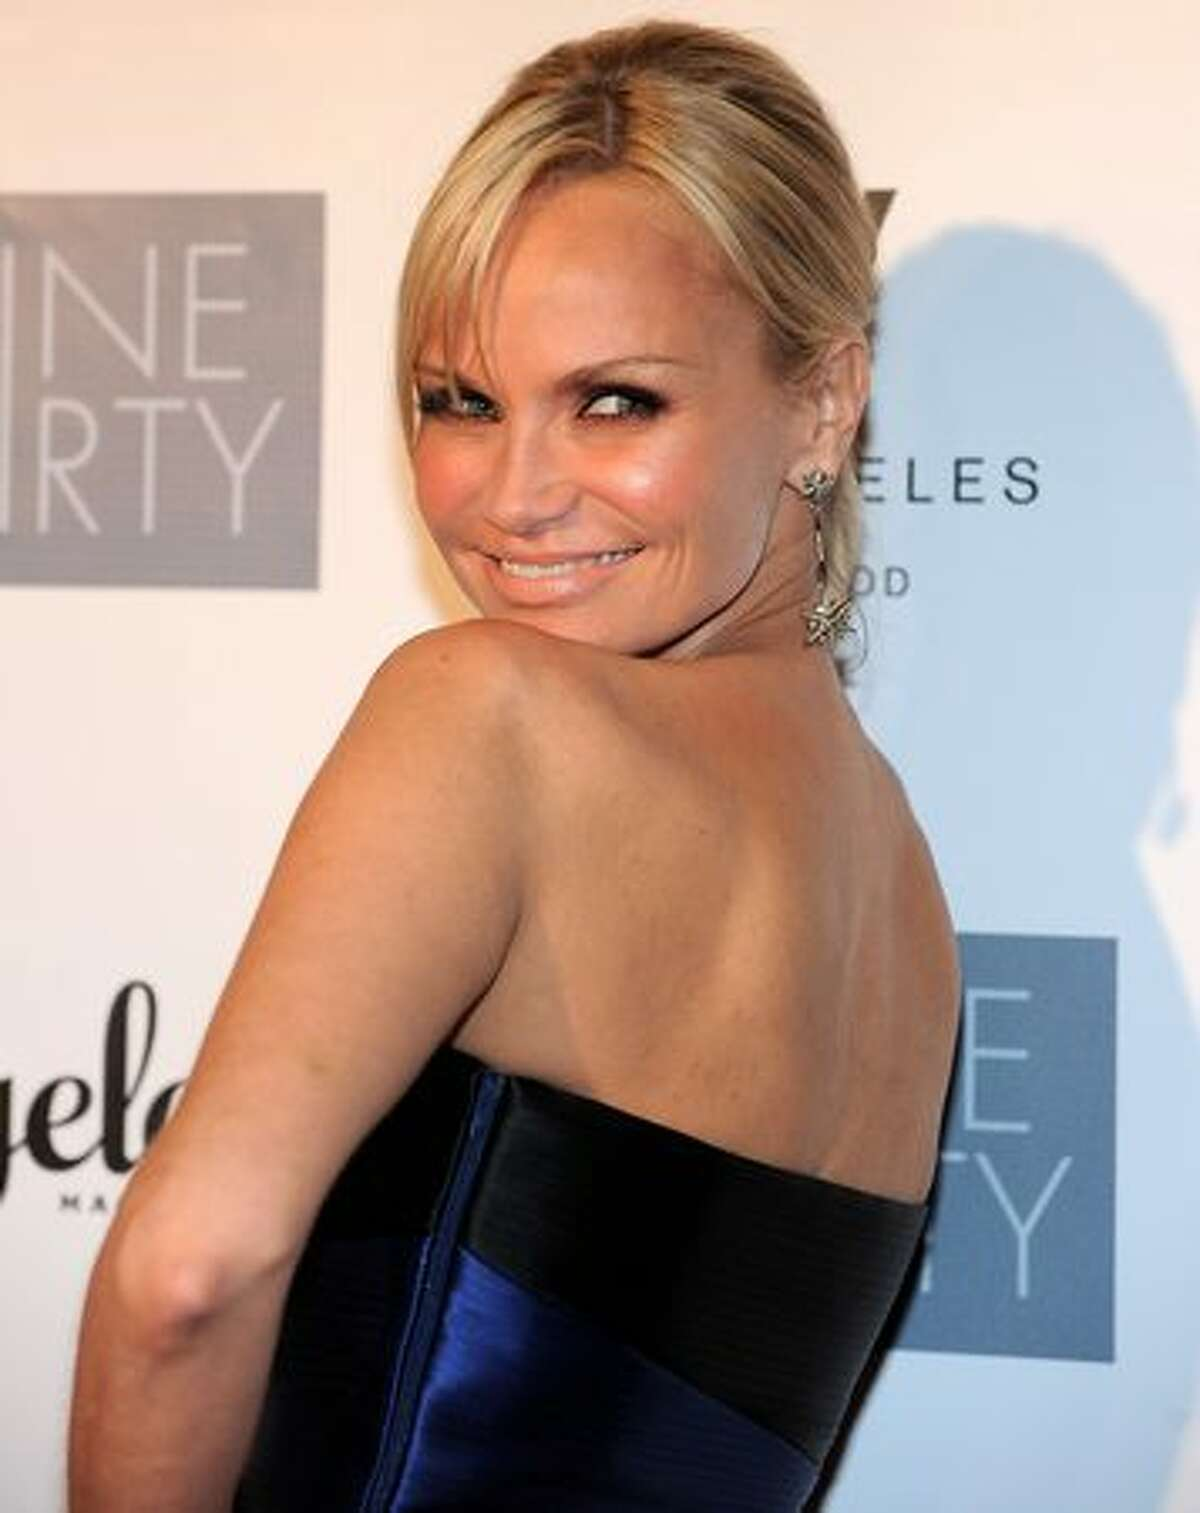 Actress/singer Kristin Chenoweth poses on the red carpet at the Geffen Playhouse's Annual Backstage at the Geffen Gala in Los Angeles, California.